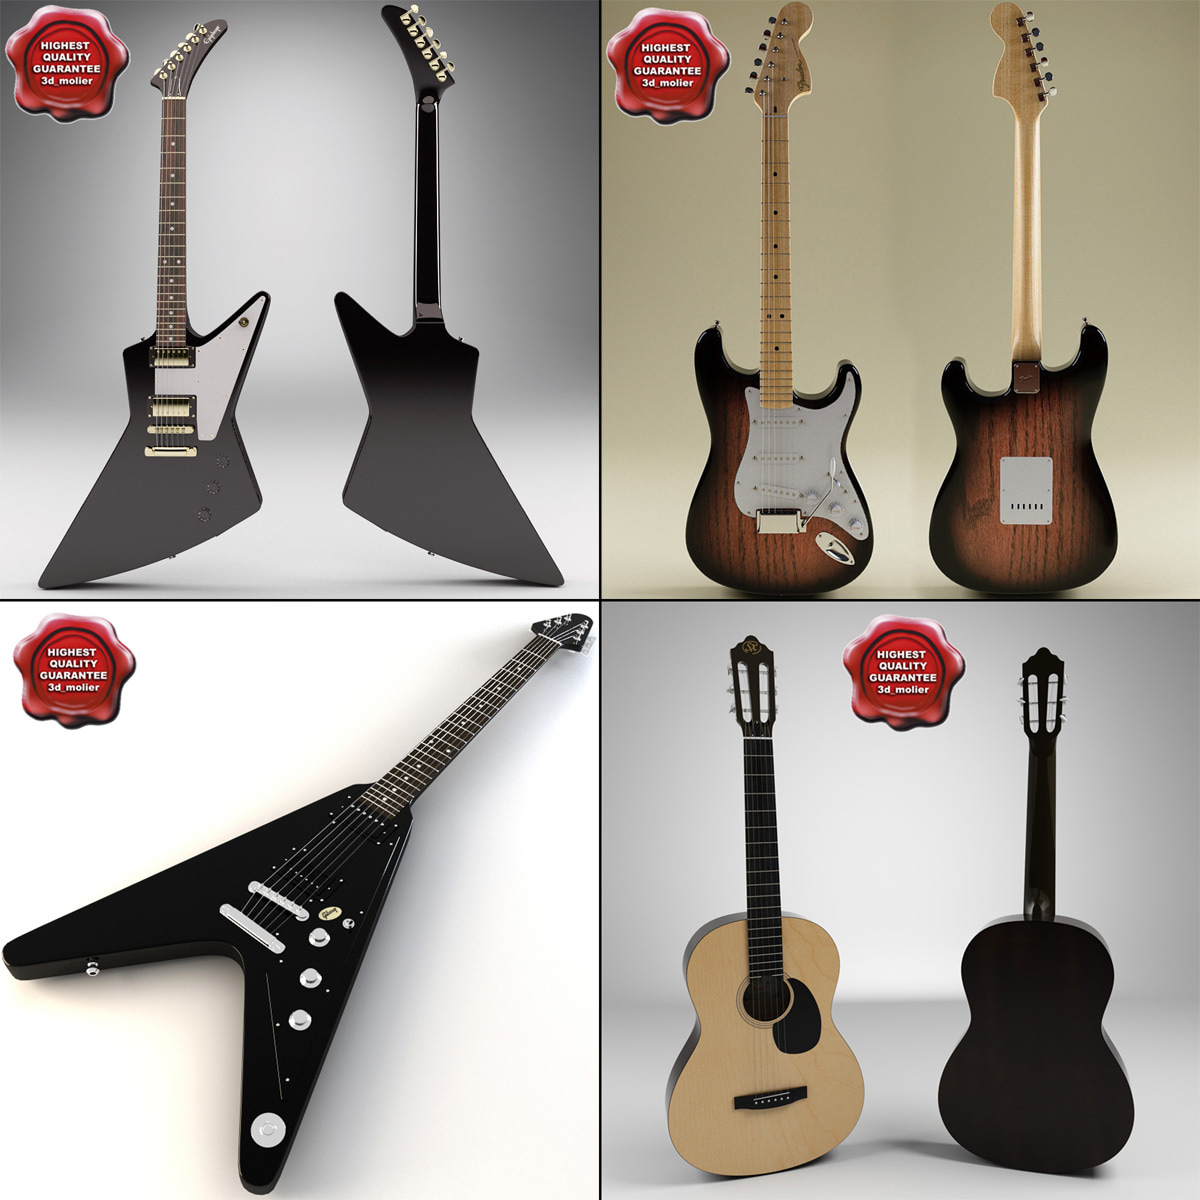 Guitars_Collection_V2_00.jpg